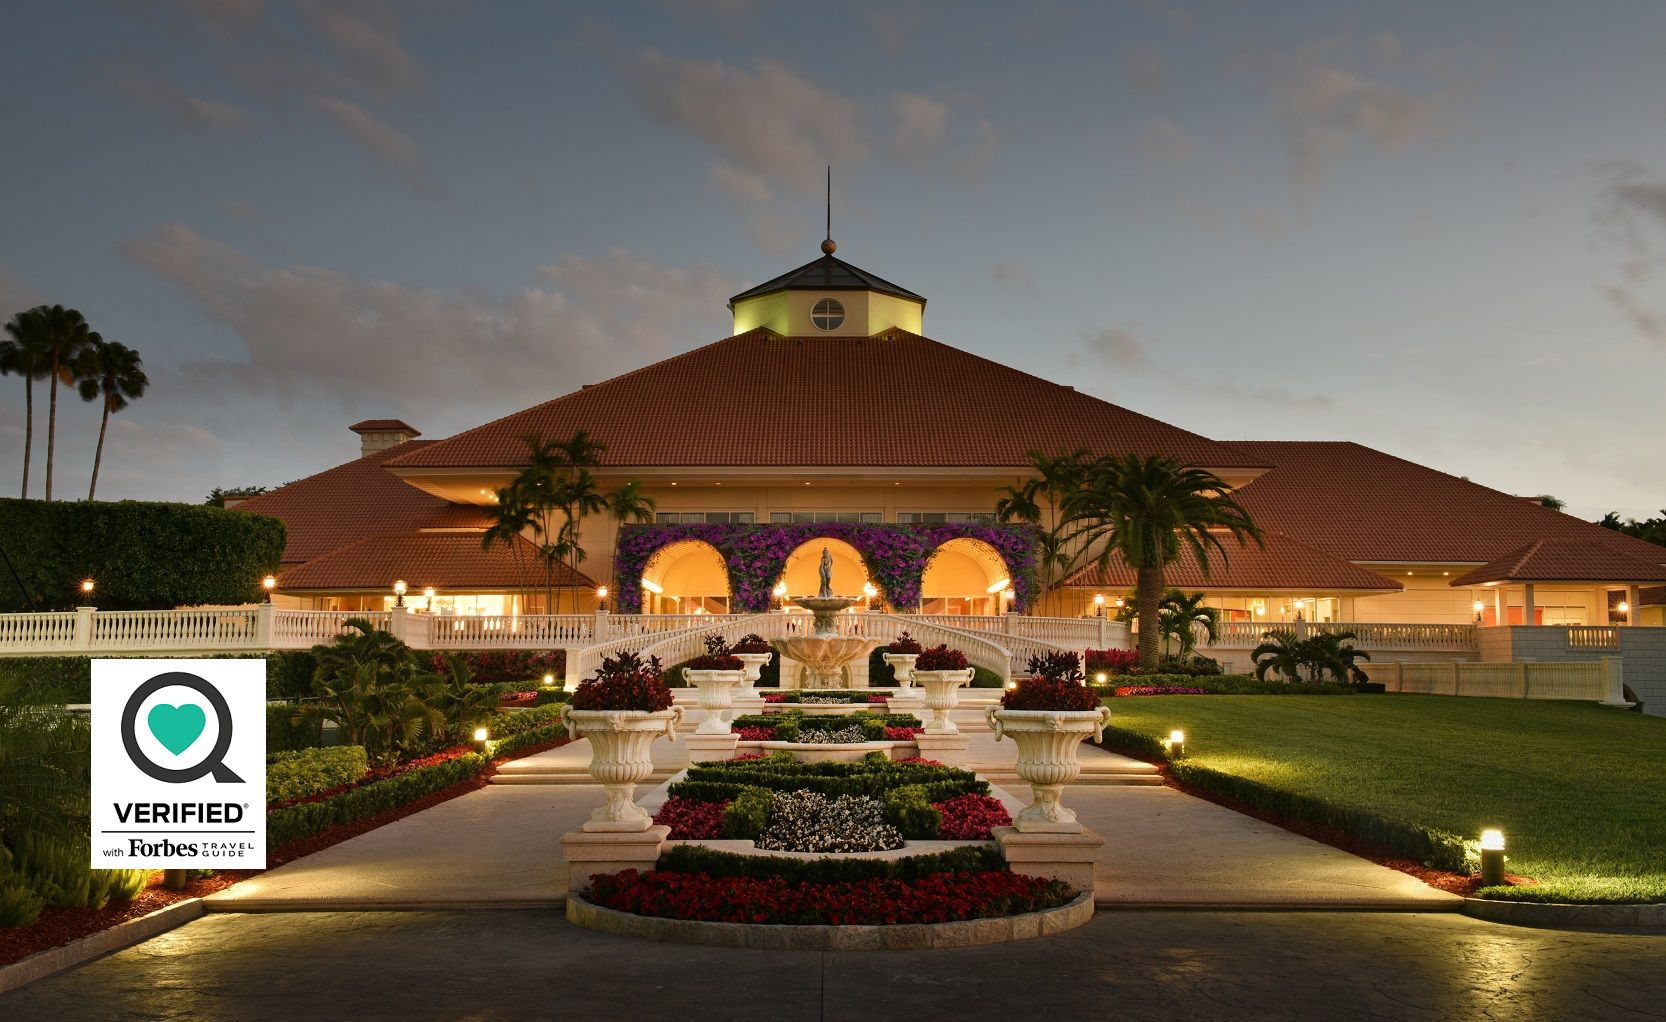 Trump Doral exterior with Forbes Verified badge overlaid on image